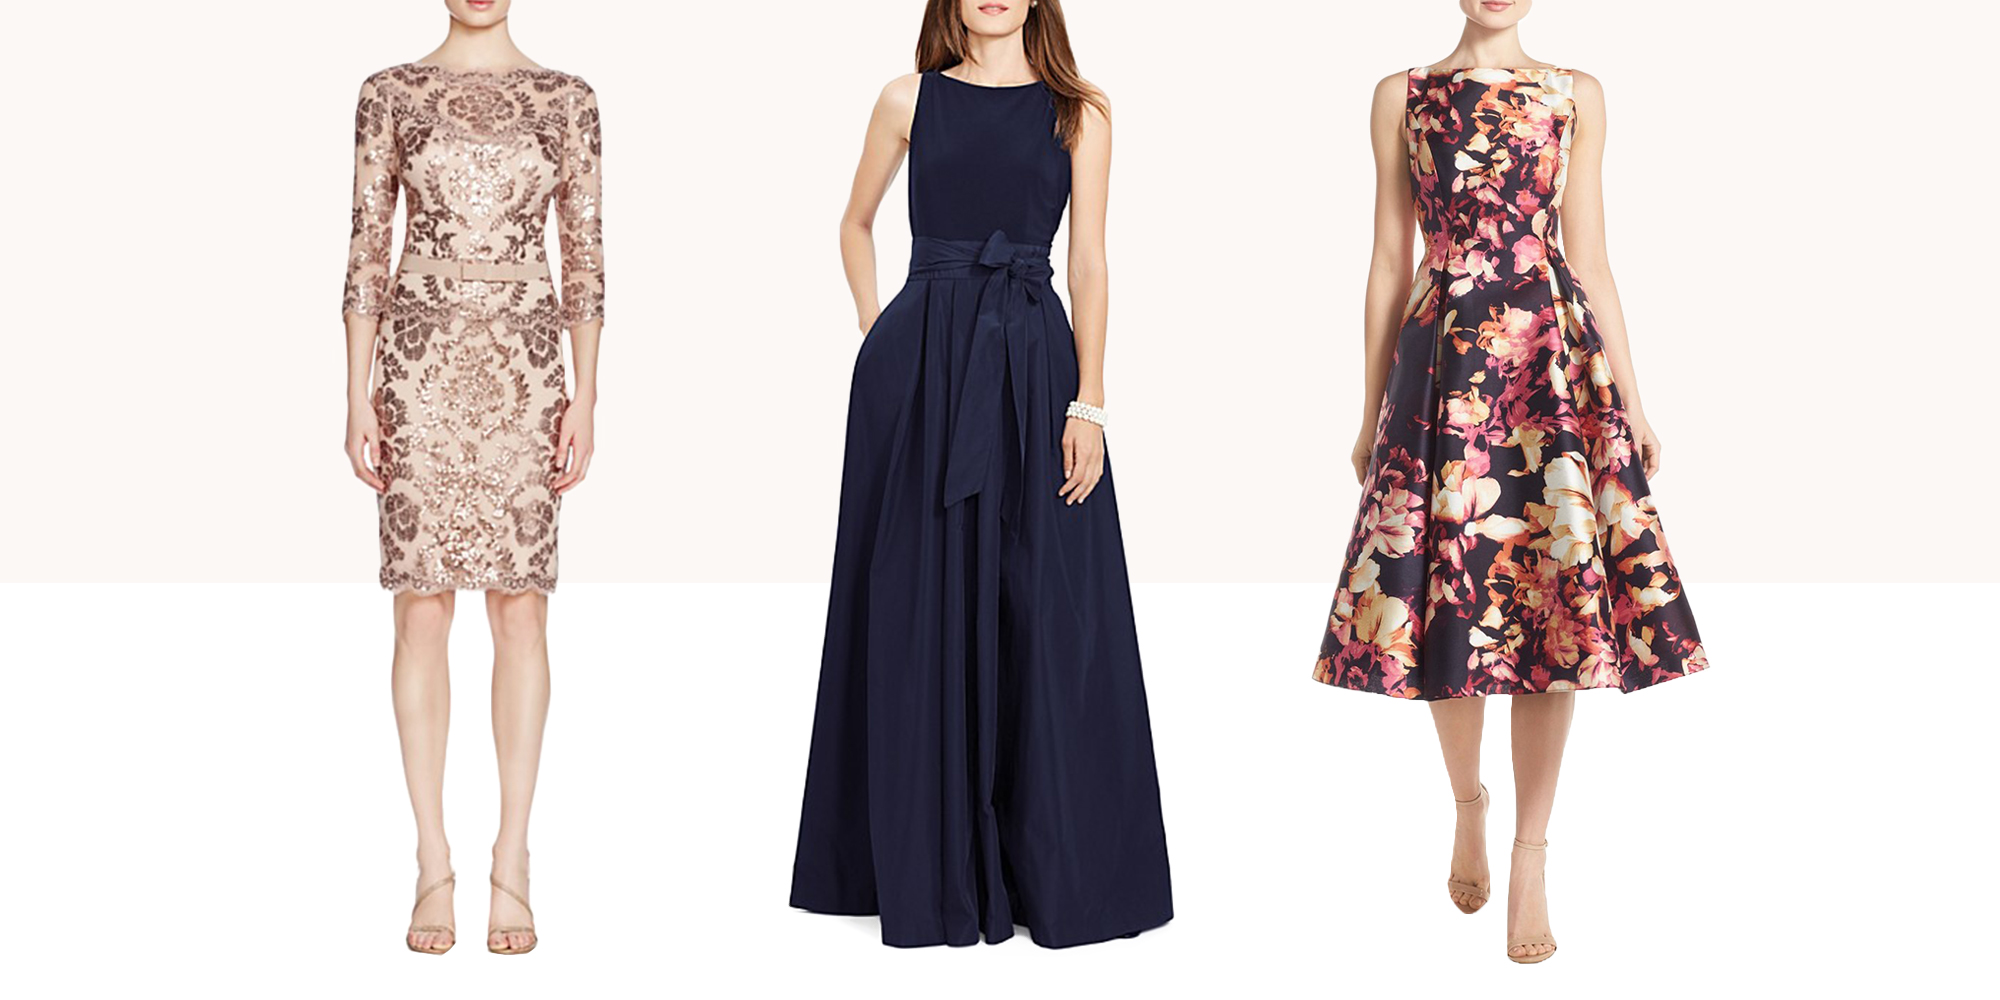 picture The most fabulous maternity dresses for any scenario